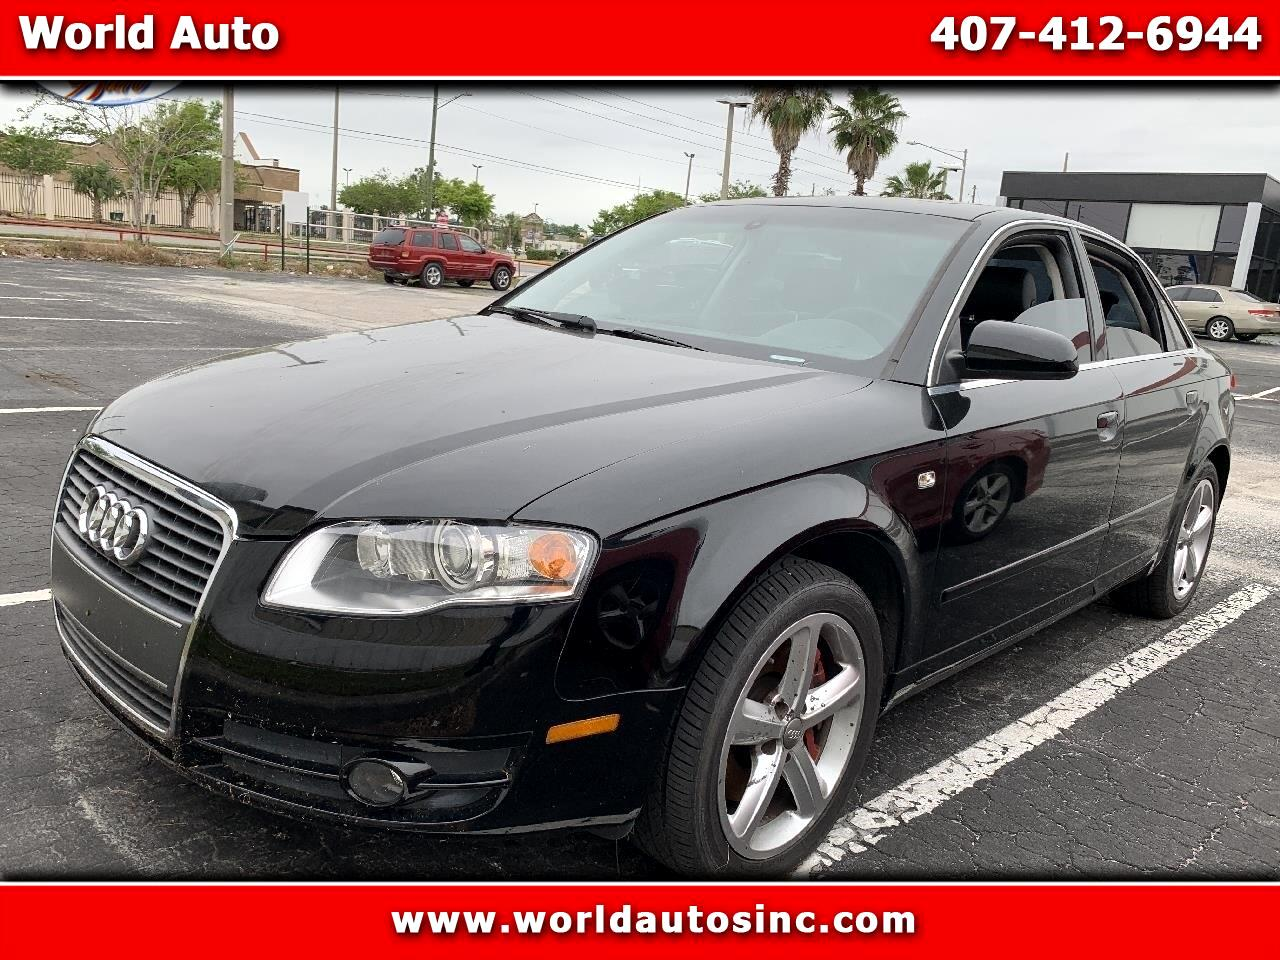 2007 Audi A4 3.2 with Multitronic